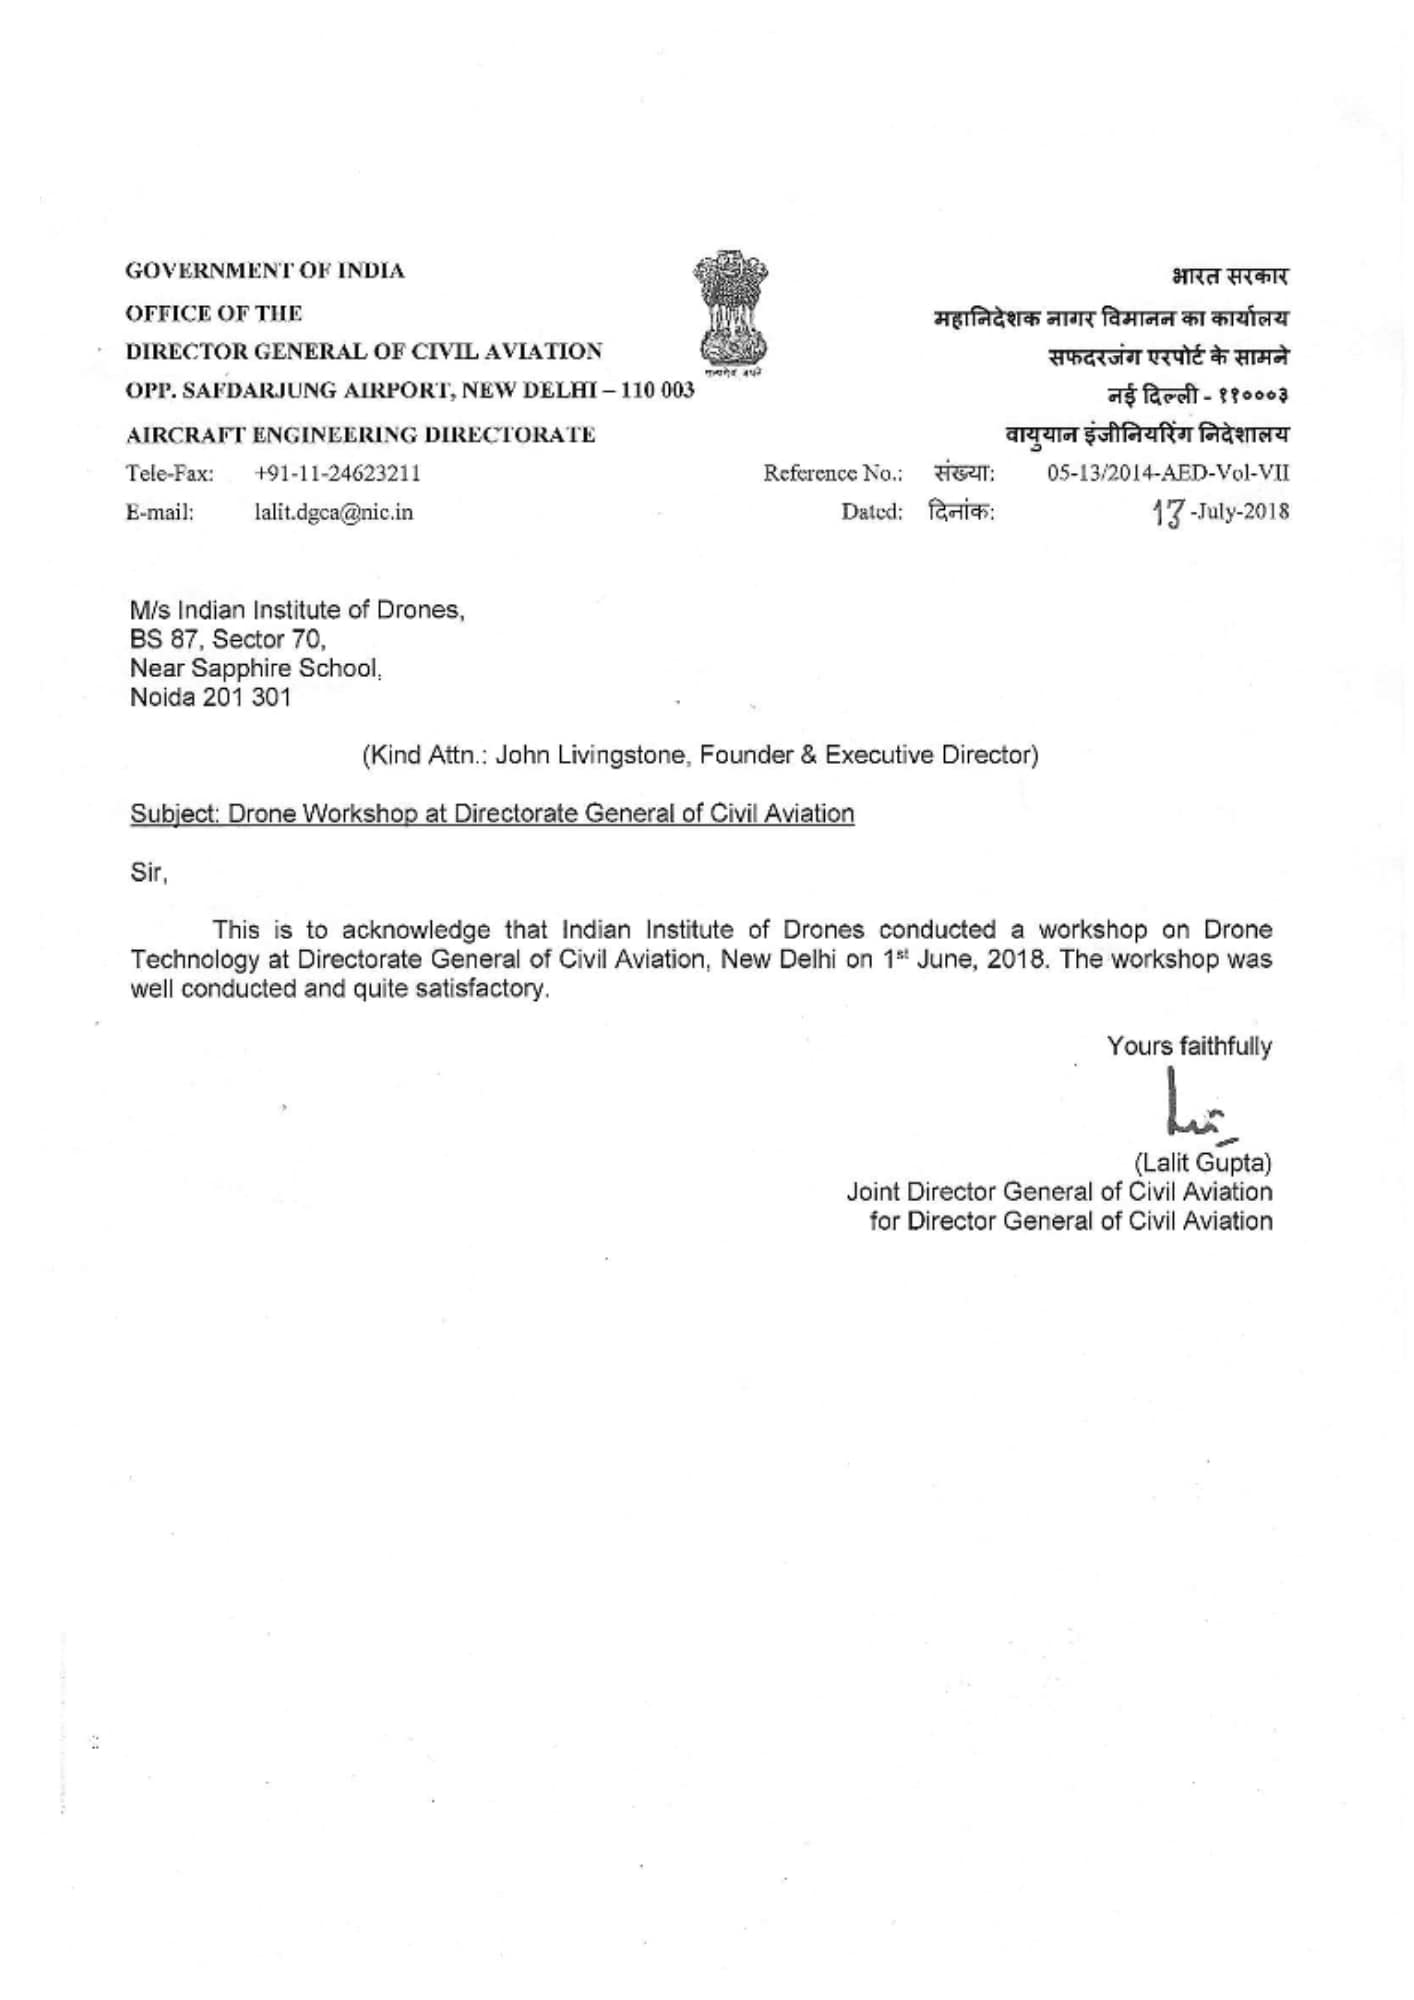 Satisfactory Letter from DGCA